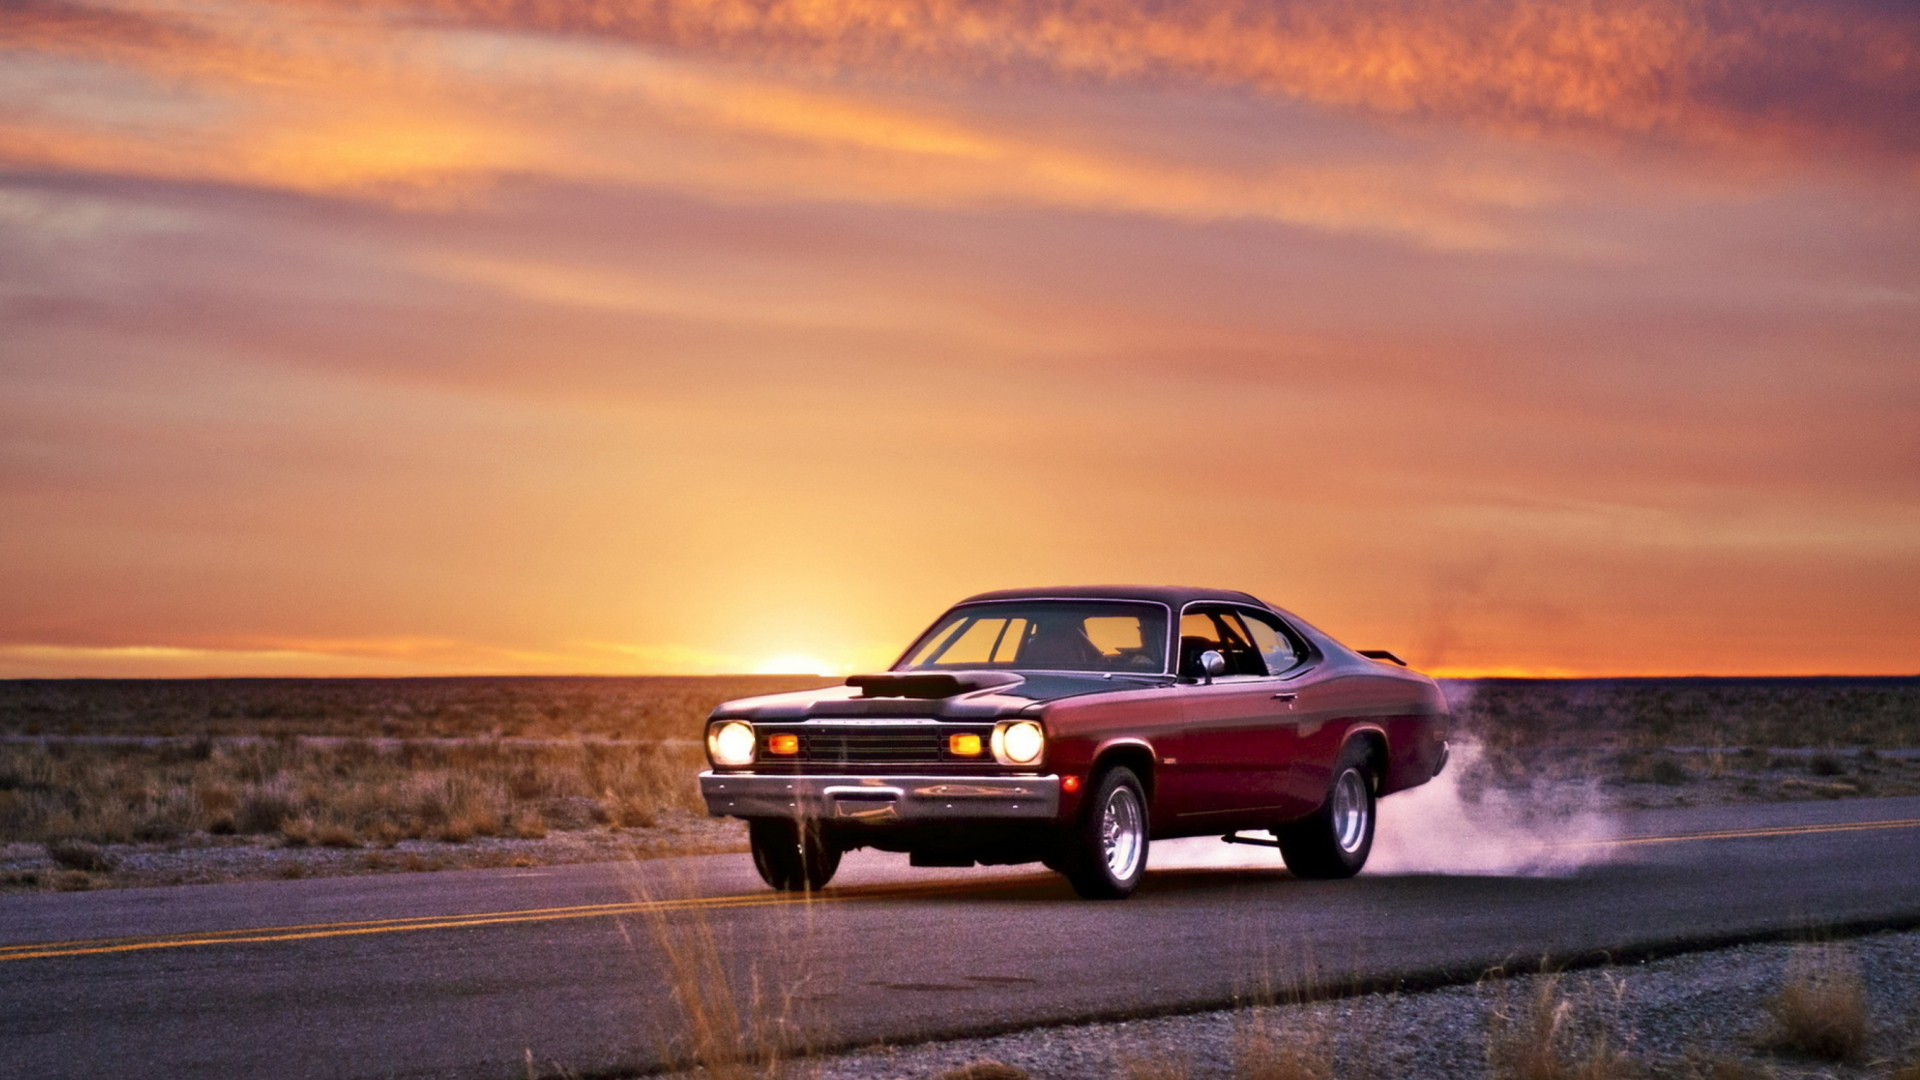 plymouth duster wallpaper for desktop 1920x1080 full hd. Black Bedroom Furniture Sets. Home Design Ideas